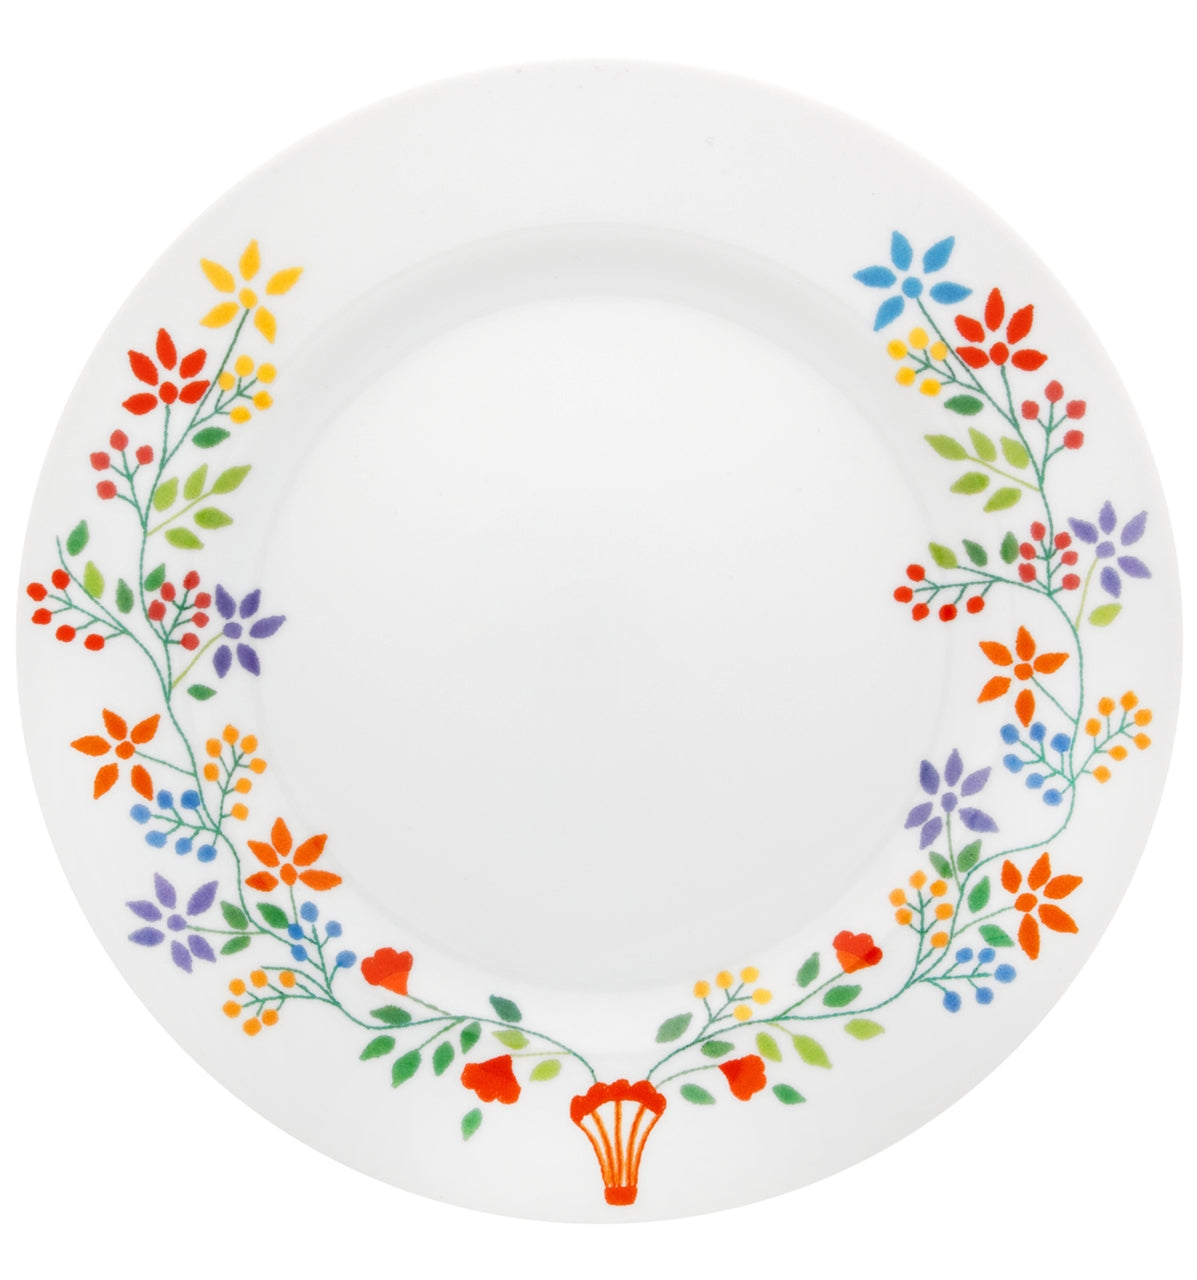 Vila Verde Dinner Plate Set of 4